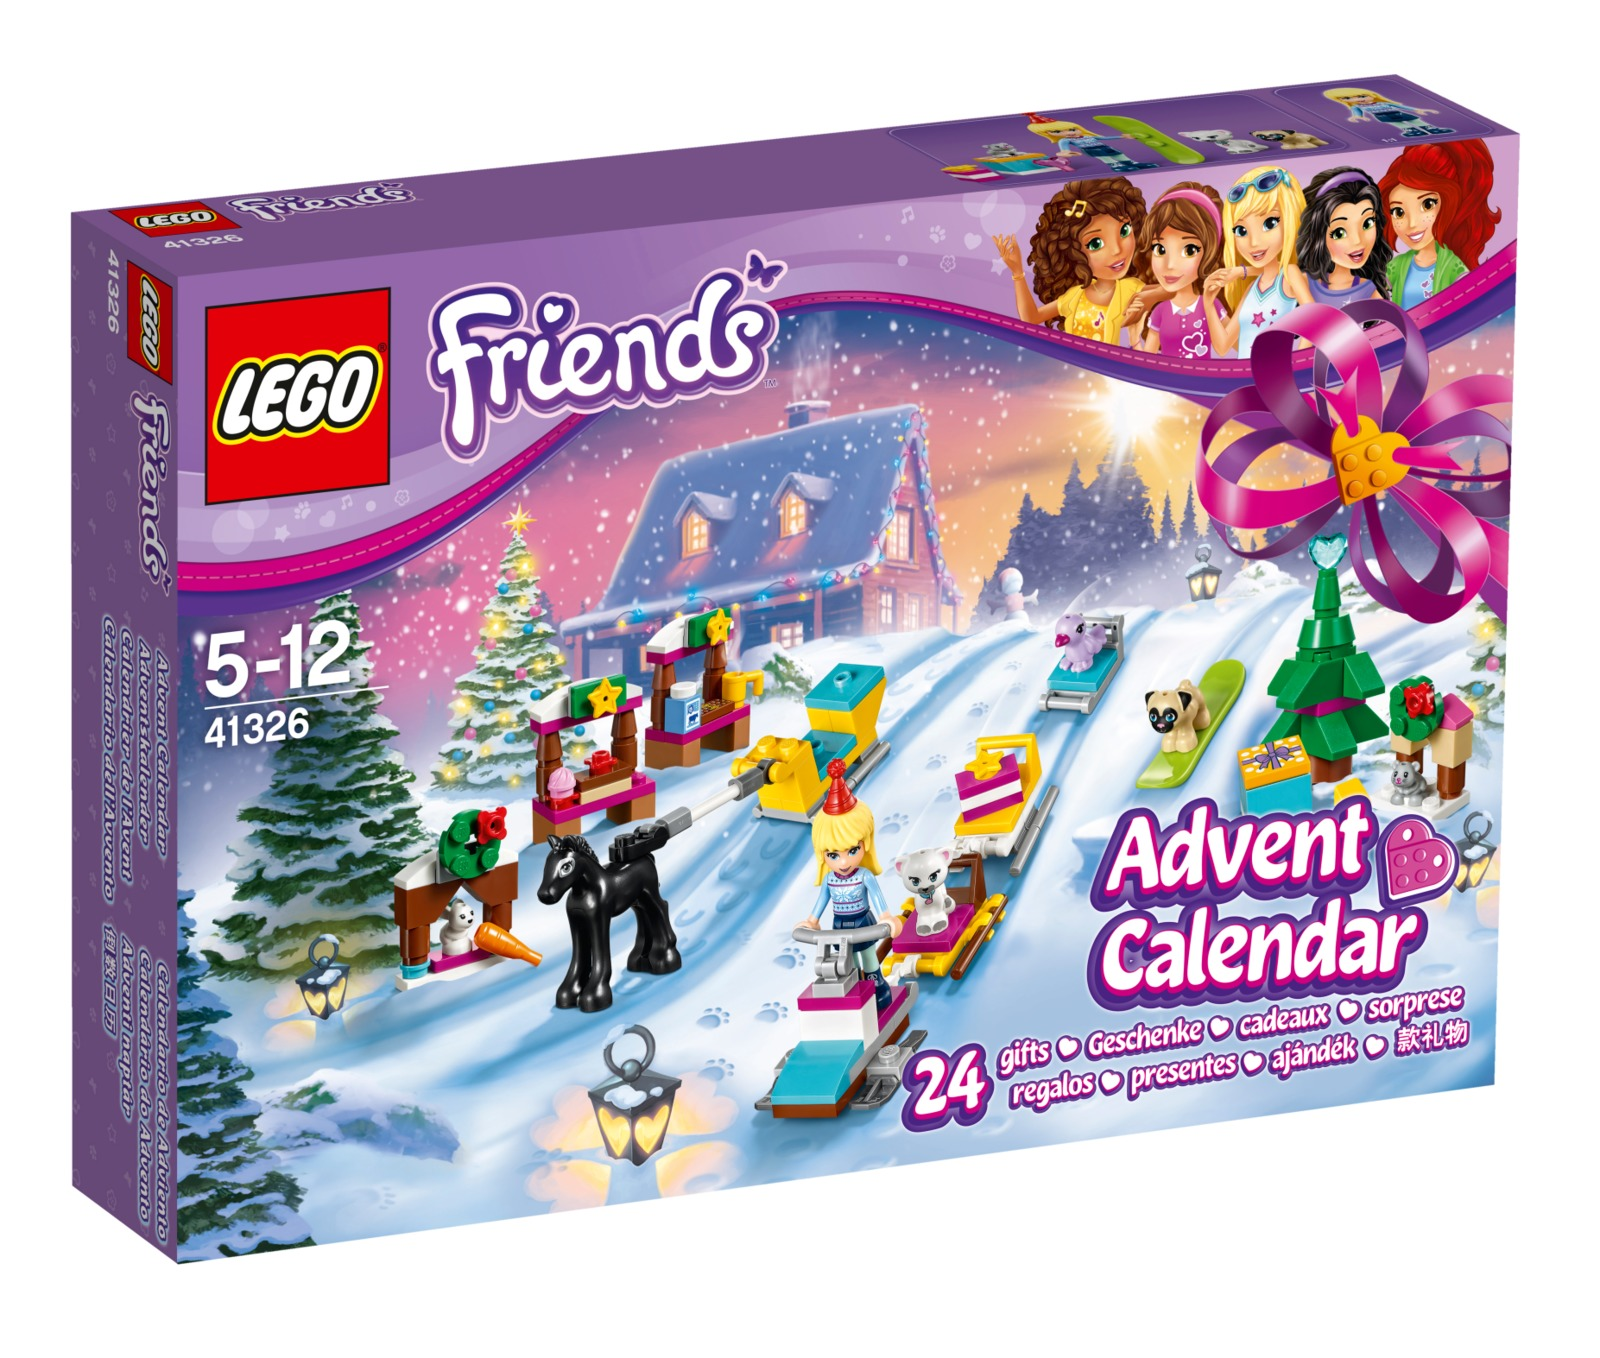 lego star wars adventi naptár 2019 LEGO Friends: Advent Calendar (41326) | Toy | at Mighty Ape NZ lego star wars adventi naptár 2019